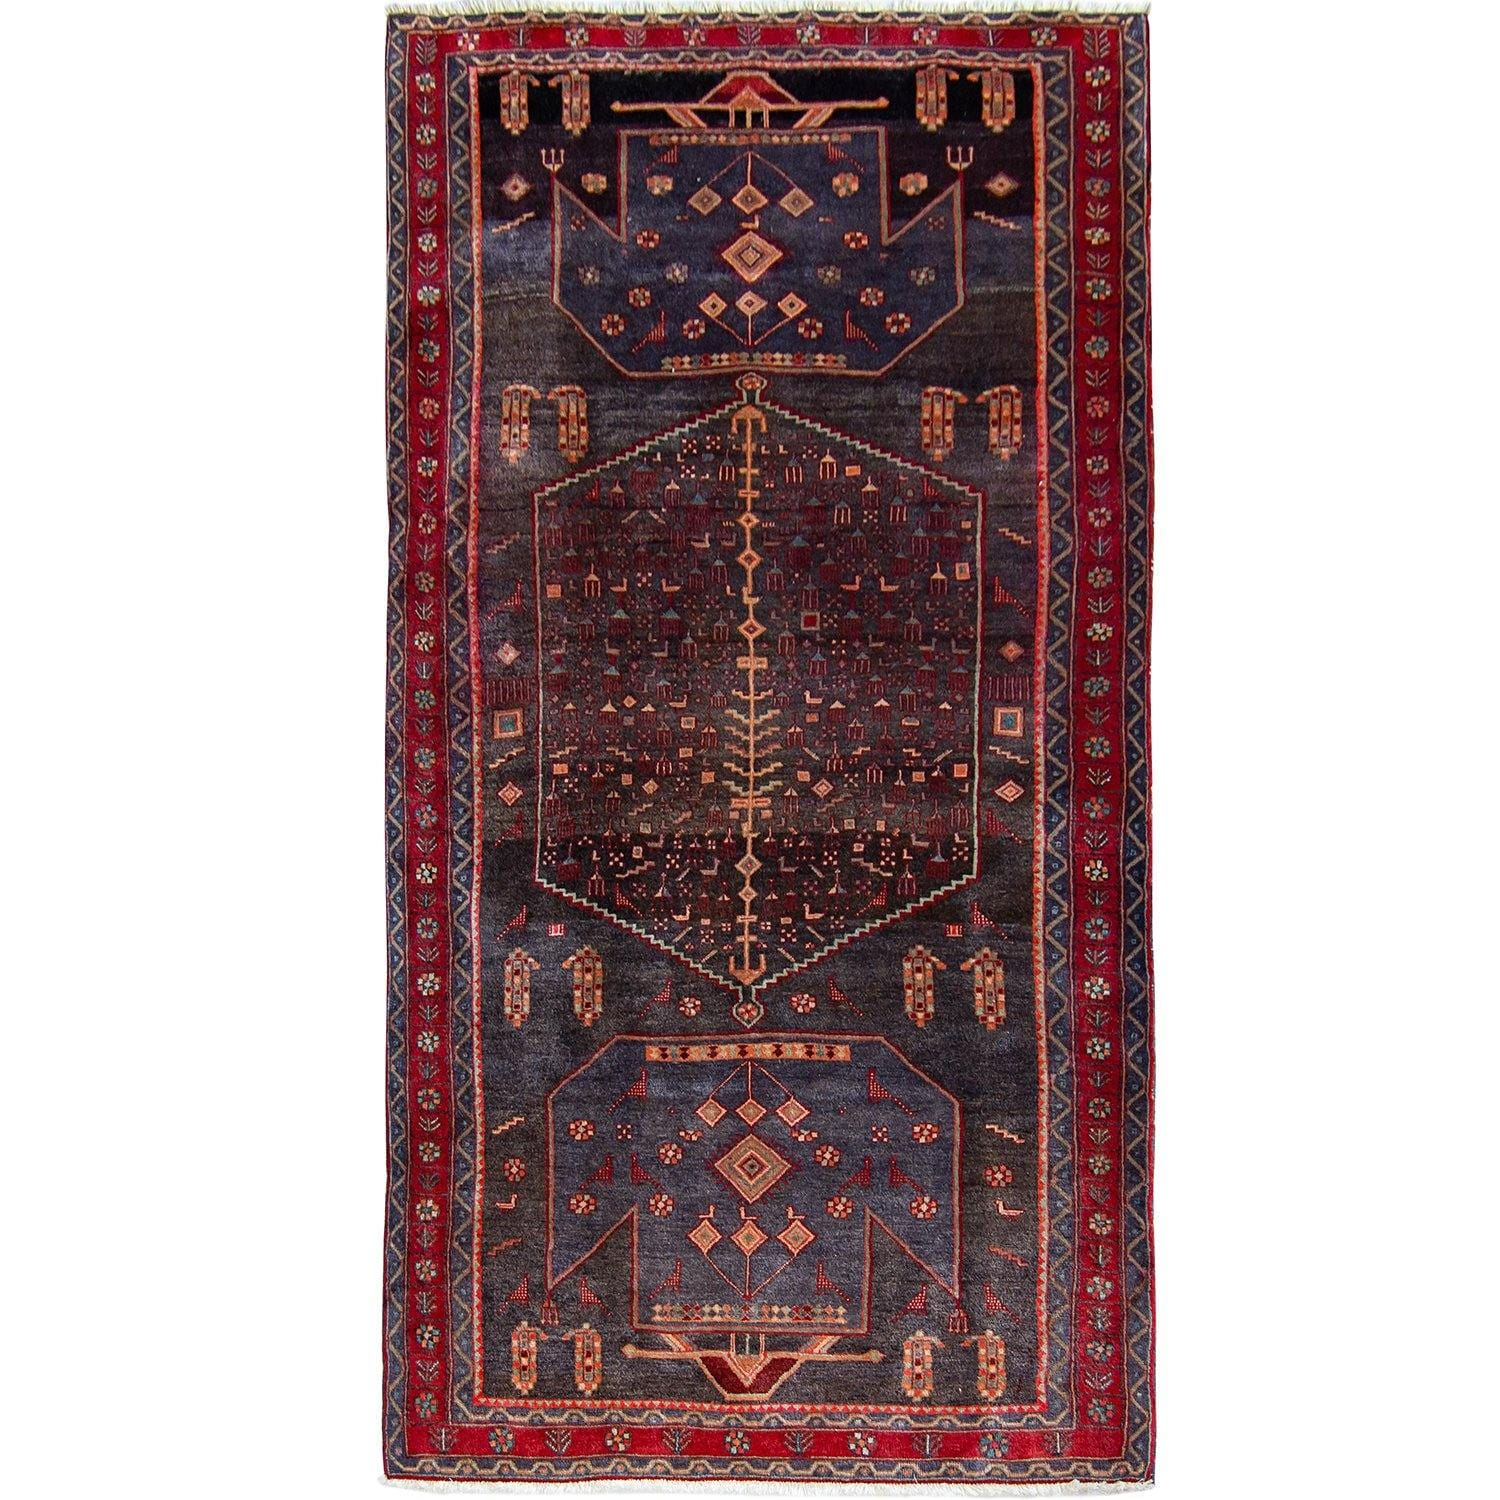 Fine Hand-knotted Wool Vintage Kolyai Persian Runner 150cm x 332cm Persian-Rug | House-of-Haghi | NewMarket | Auckland | NZ | Handmade Persian Rugs | Hand Knotted Persian Rugs